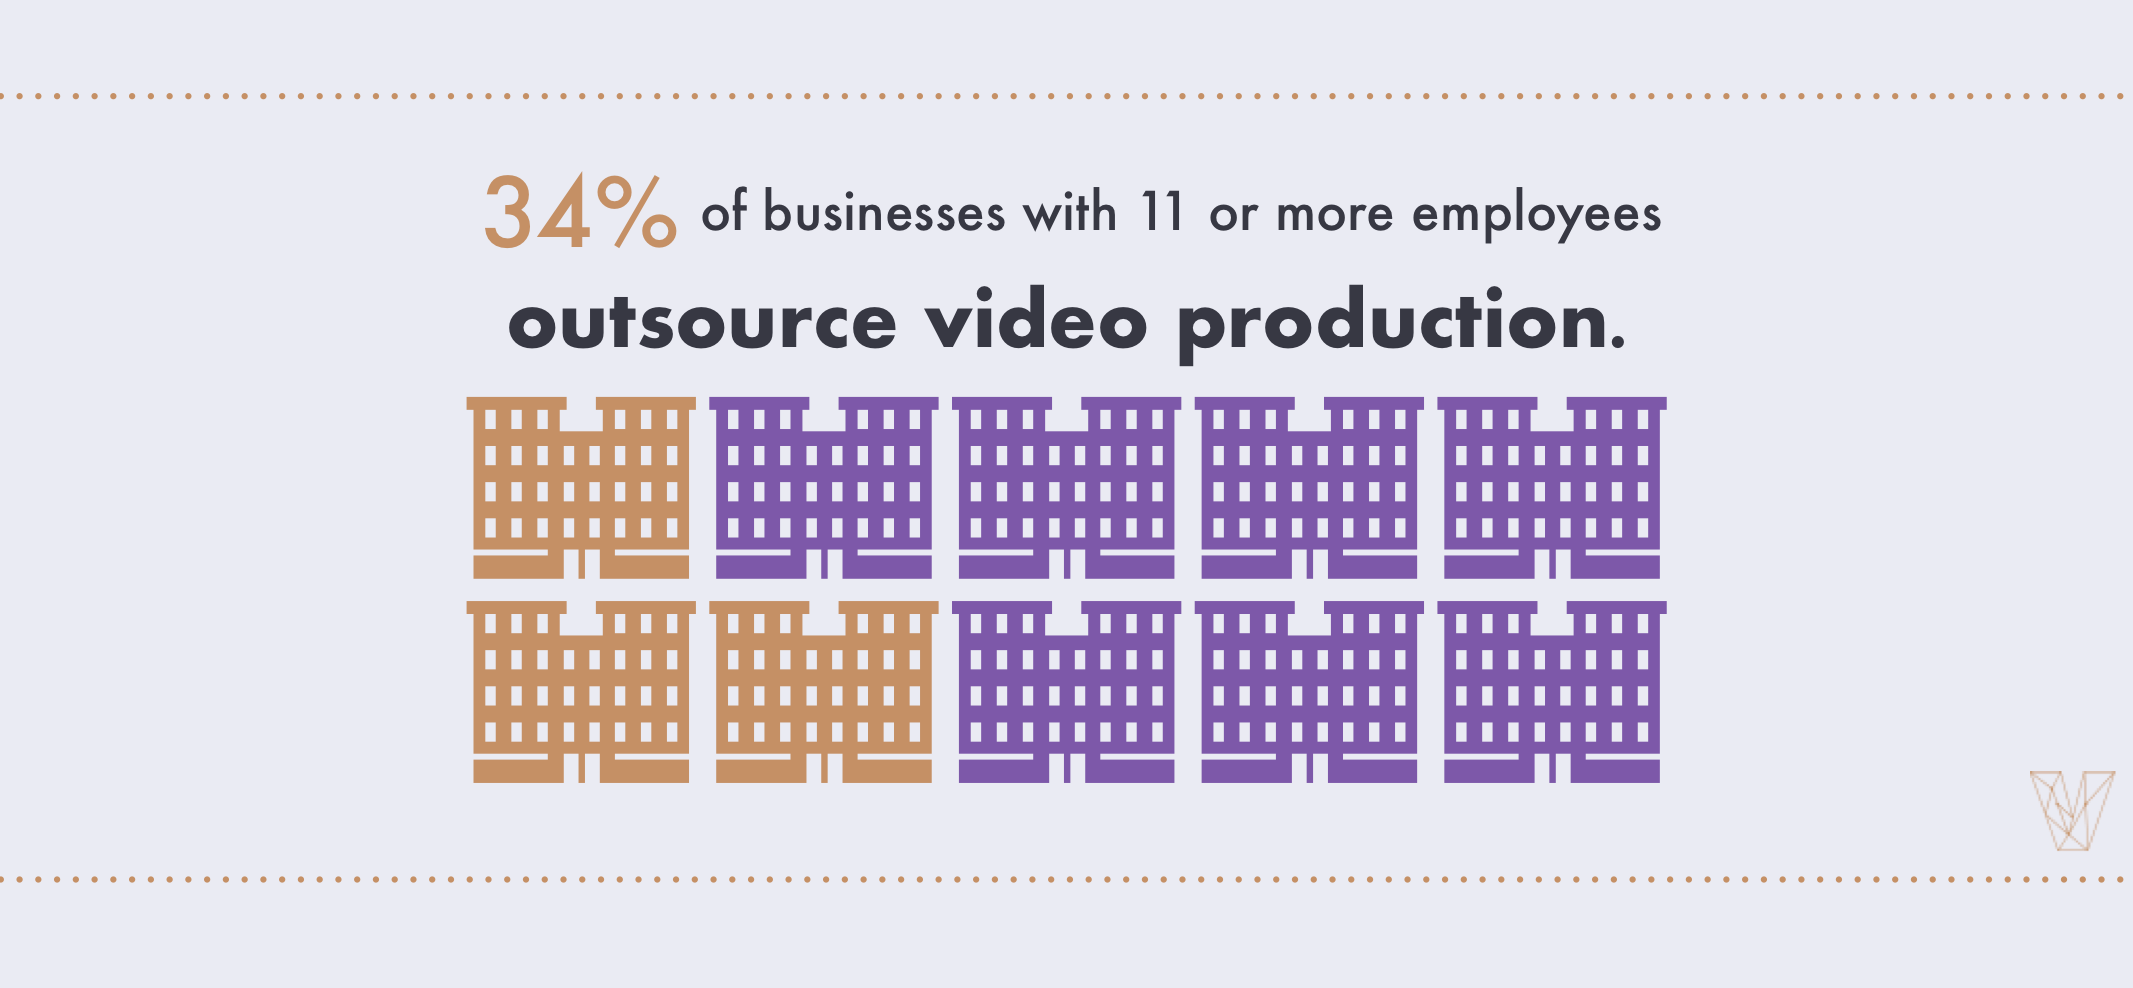 34% of businesses with 11 or more employees outsource video production